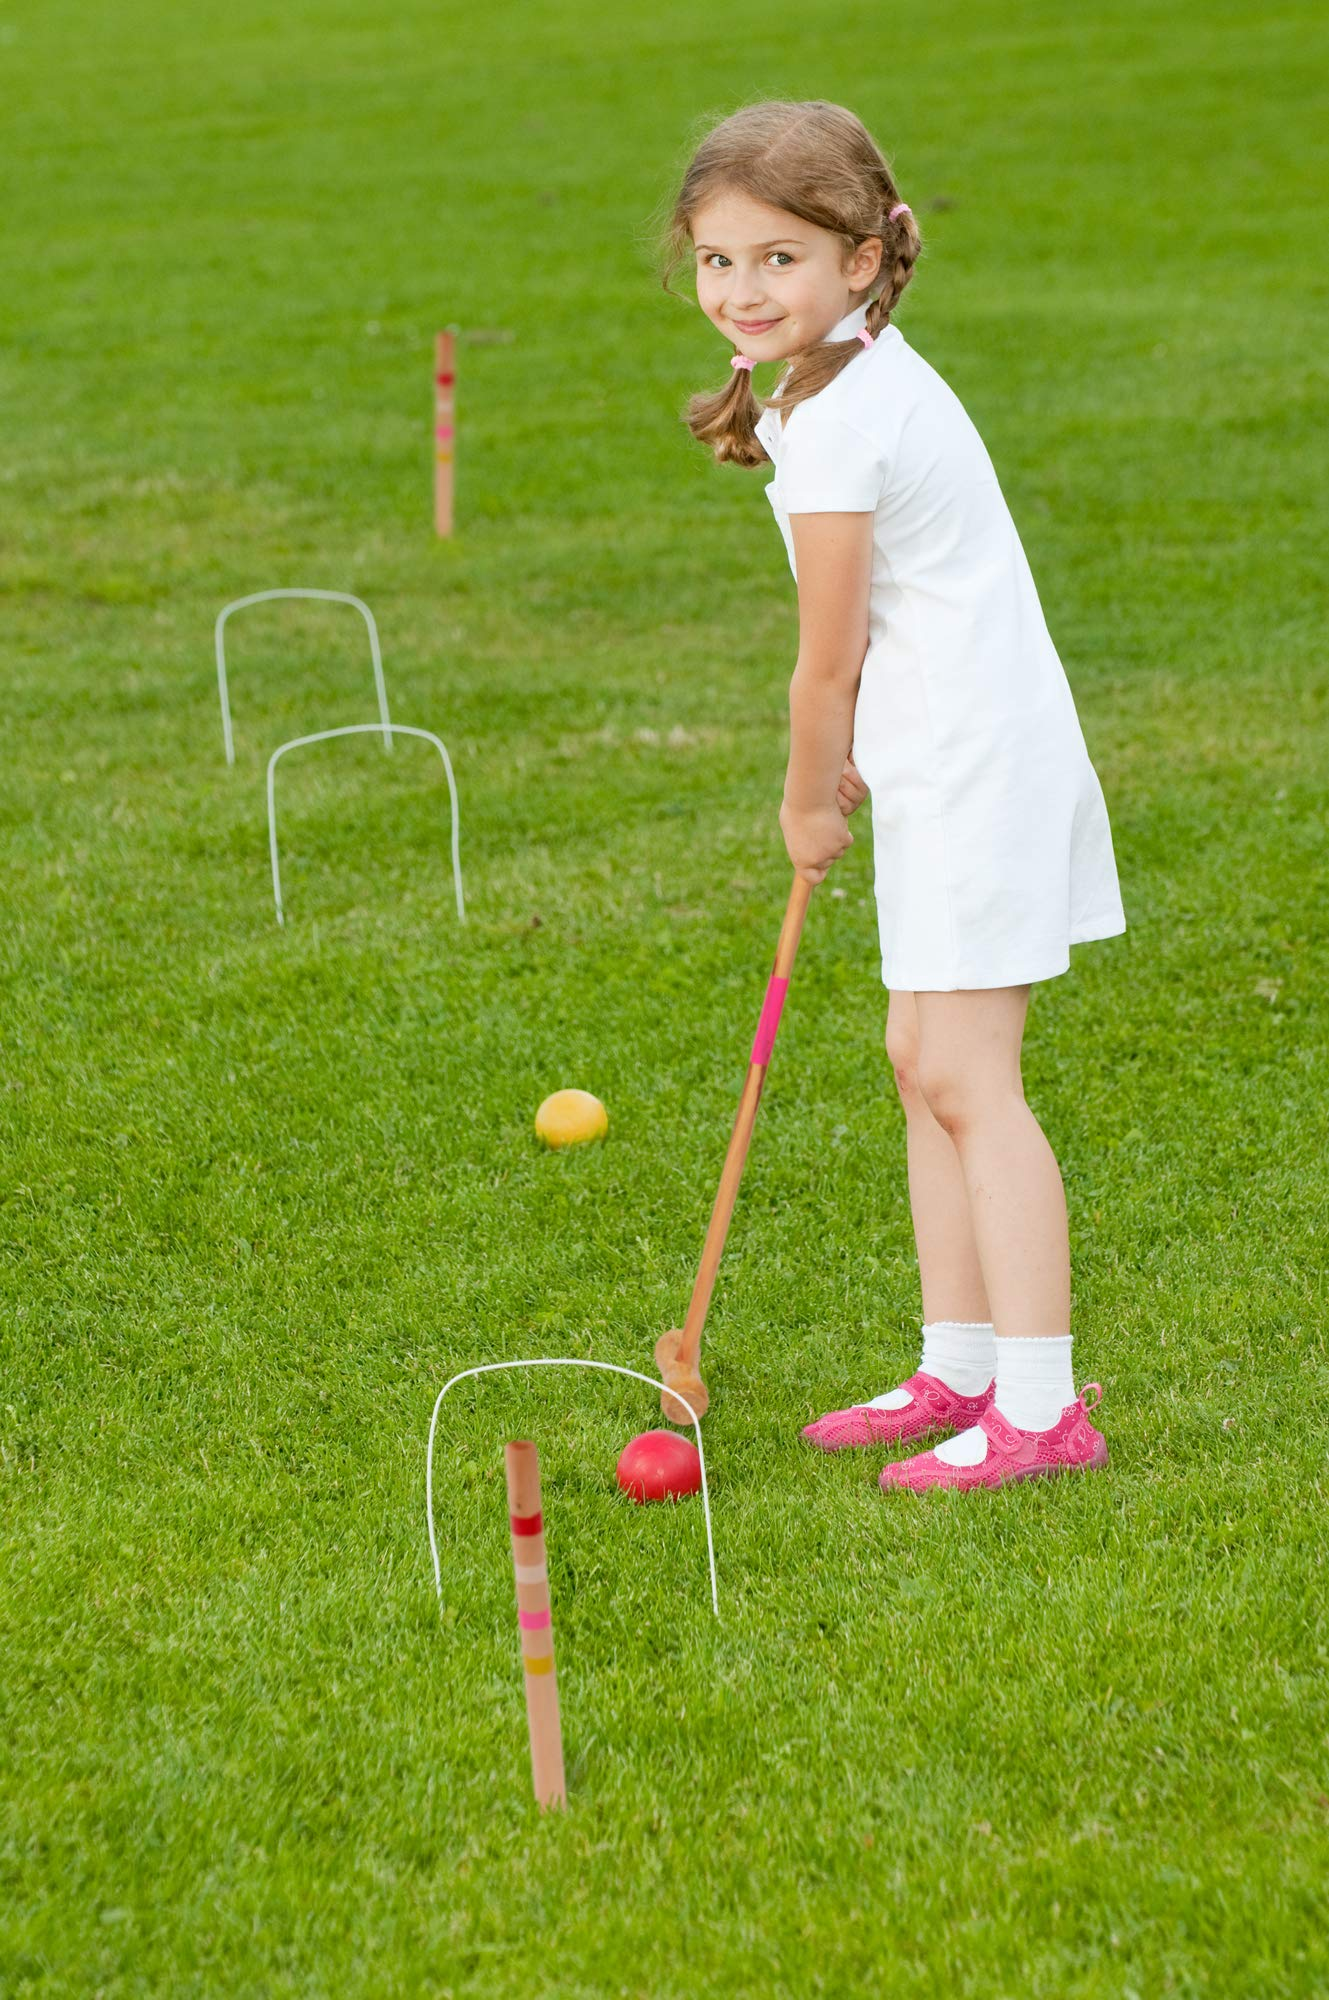 Kids Croquet Set for 4-Players | Classic Outdoor Lawn Game for Children | Great for Birthday Parties, Picnics, BBQs, and More | Comes with Mallets, Balls, Wickets, and a Carrying Bag for Portability by Crown Sporting Goods (Image #3)